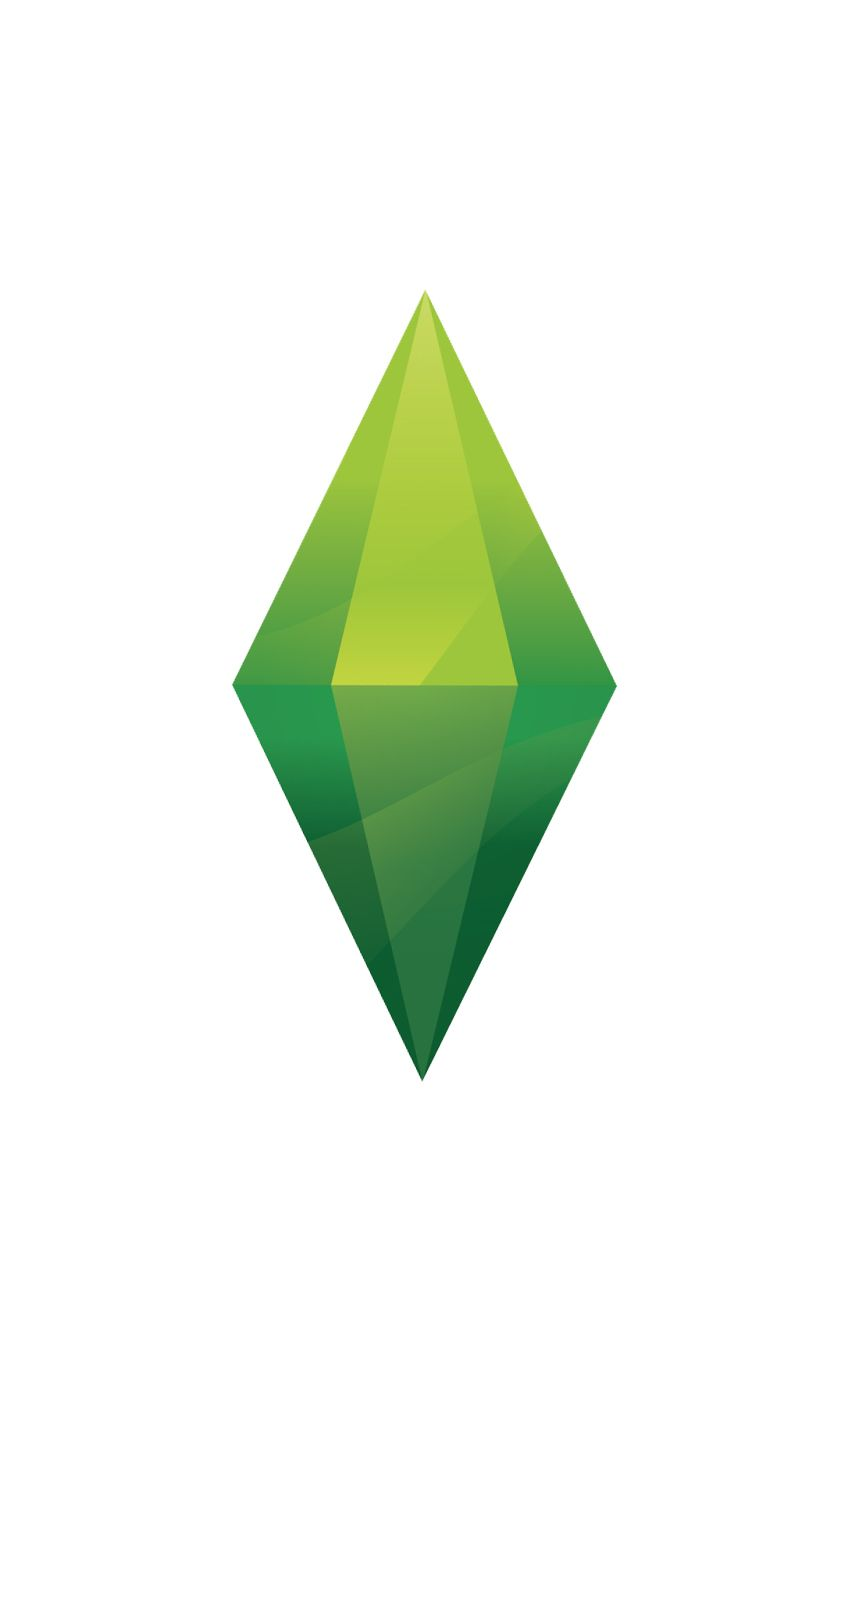 Plumbob Thesims Iphone 4 5 6 Wallpaper Check Out More